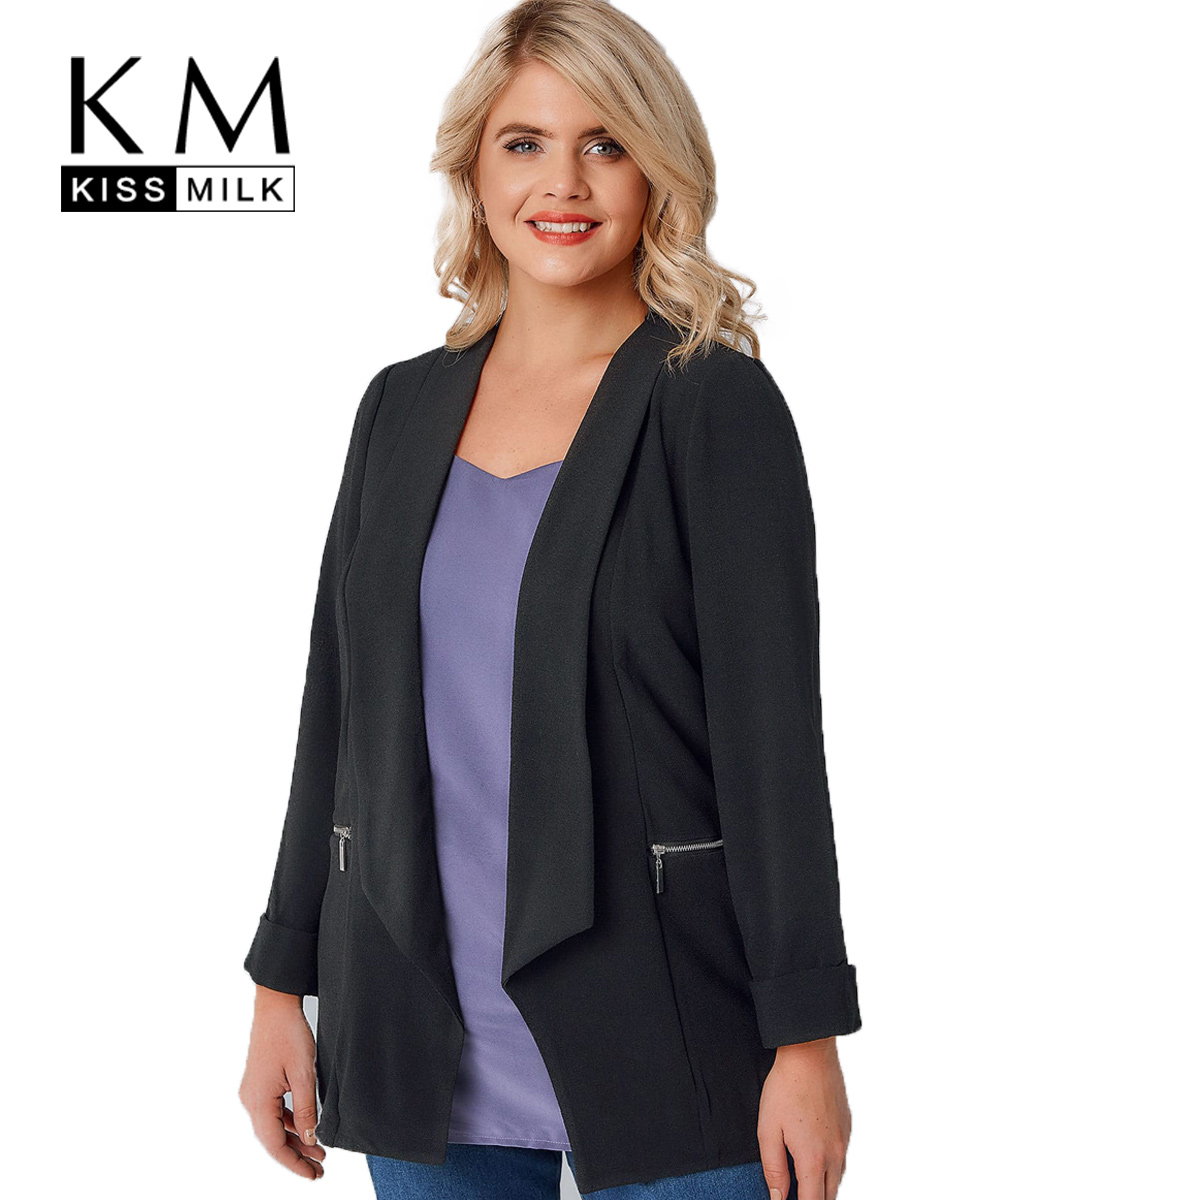 Kissmilk Plus Size Solid Black Notched Collar Long Sleeve Coats Office Lady Zipper Women Clothing Casual Outwears